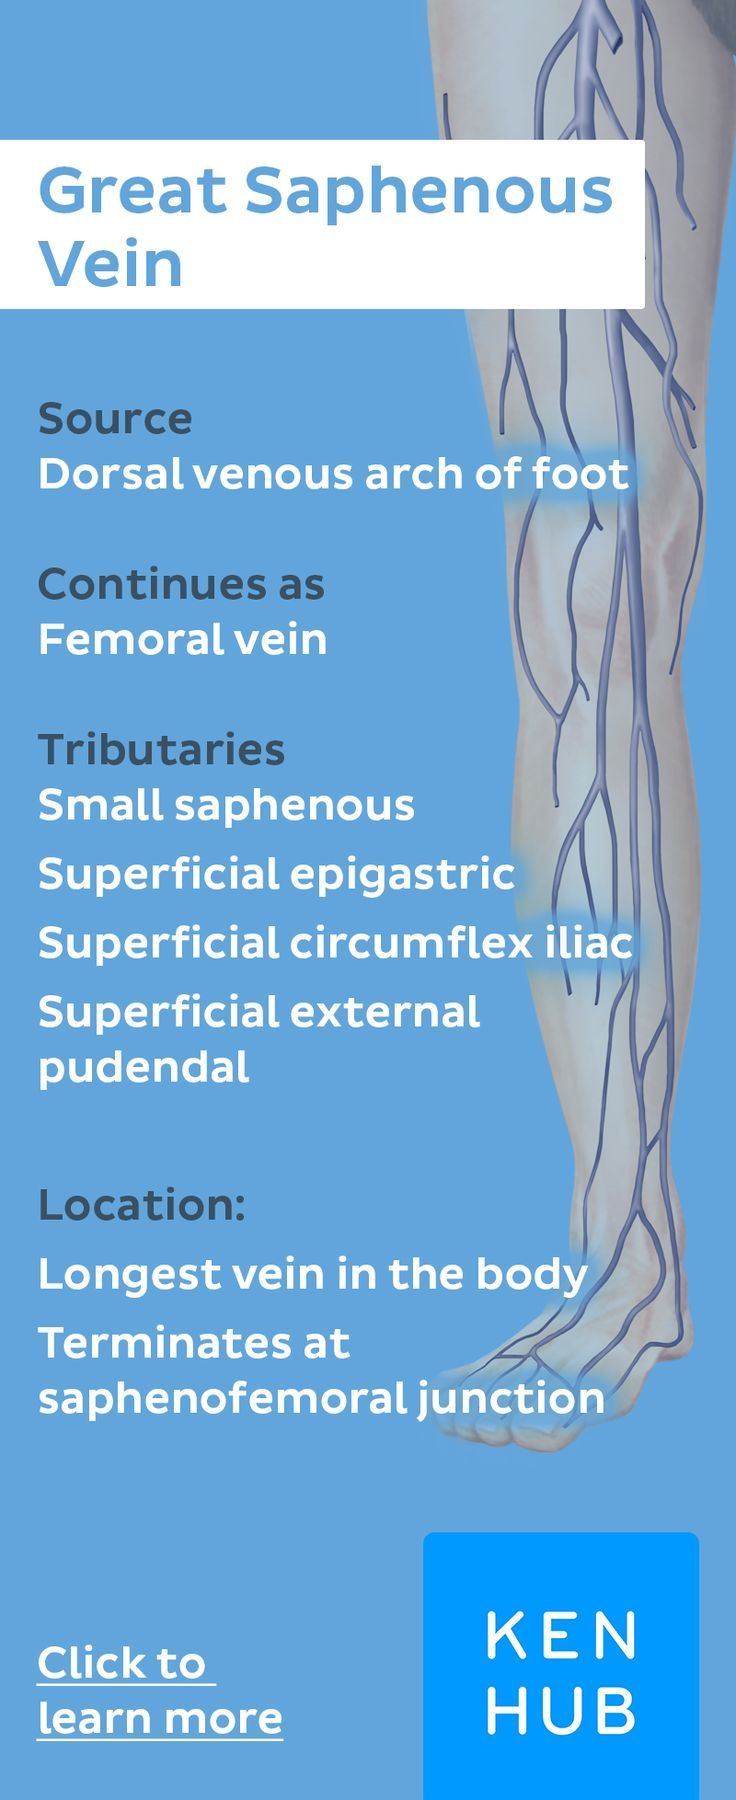 The great saphenous vein is a large superficial vein of the lower limb and drains into the femoral v